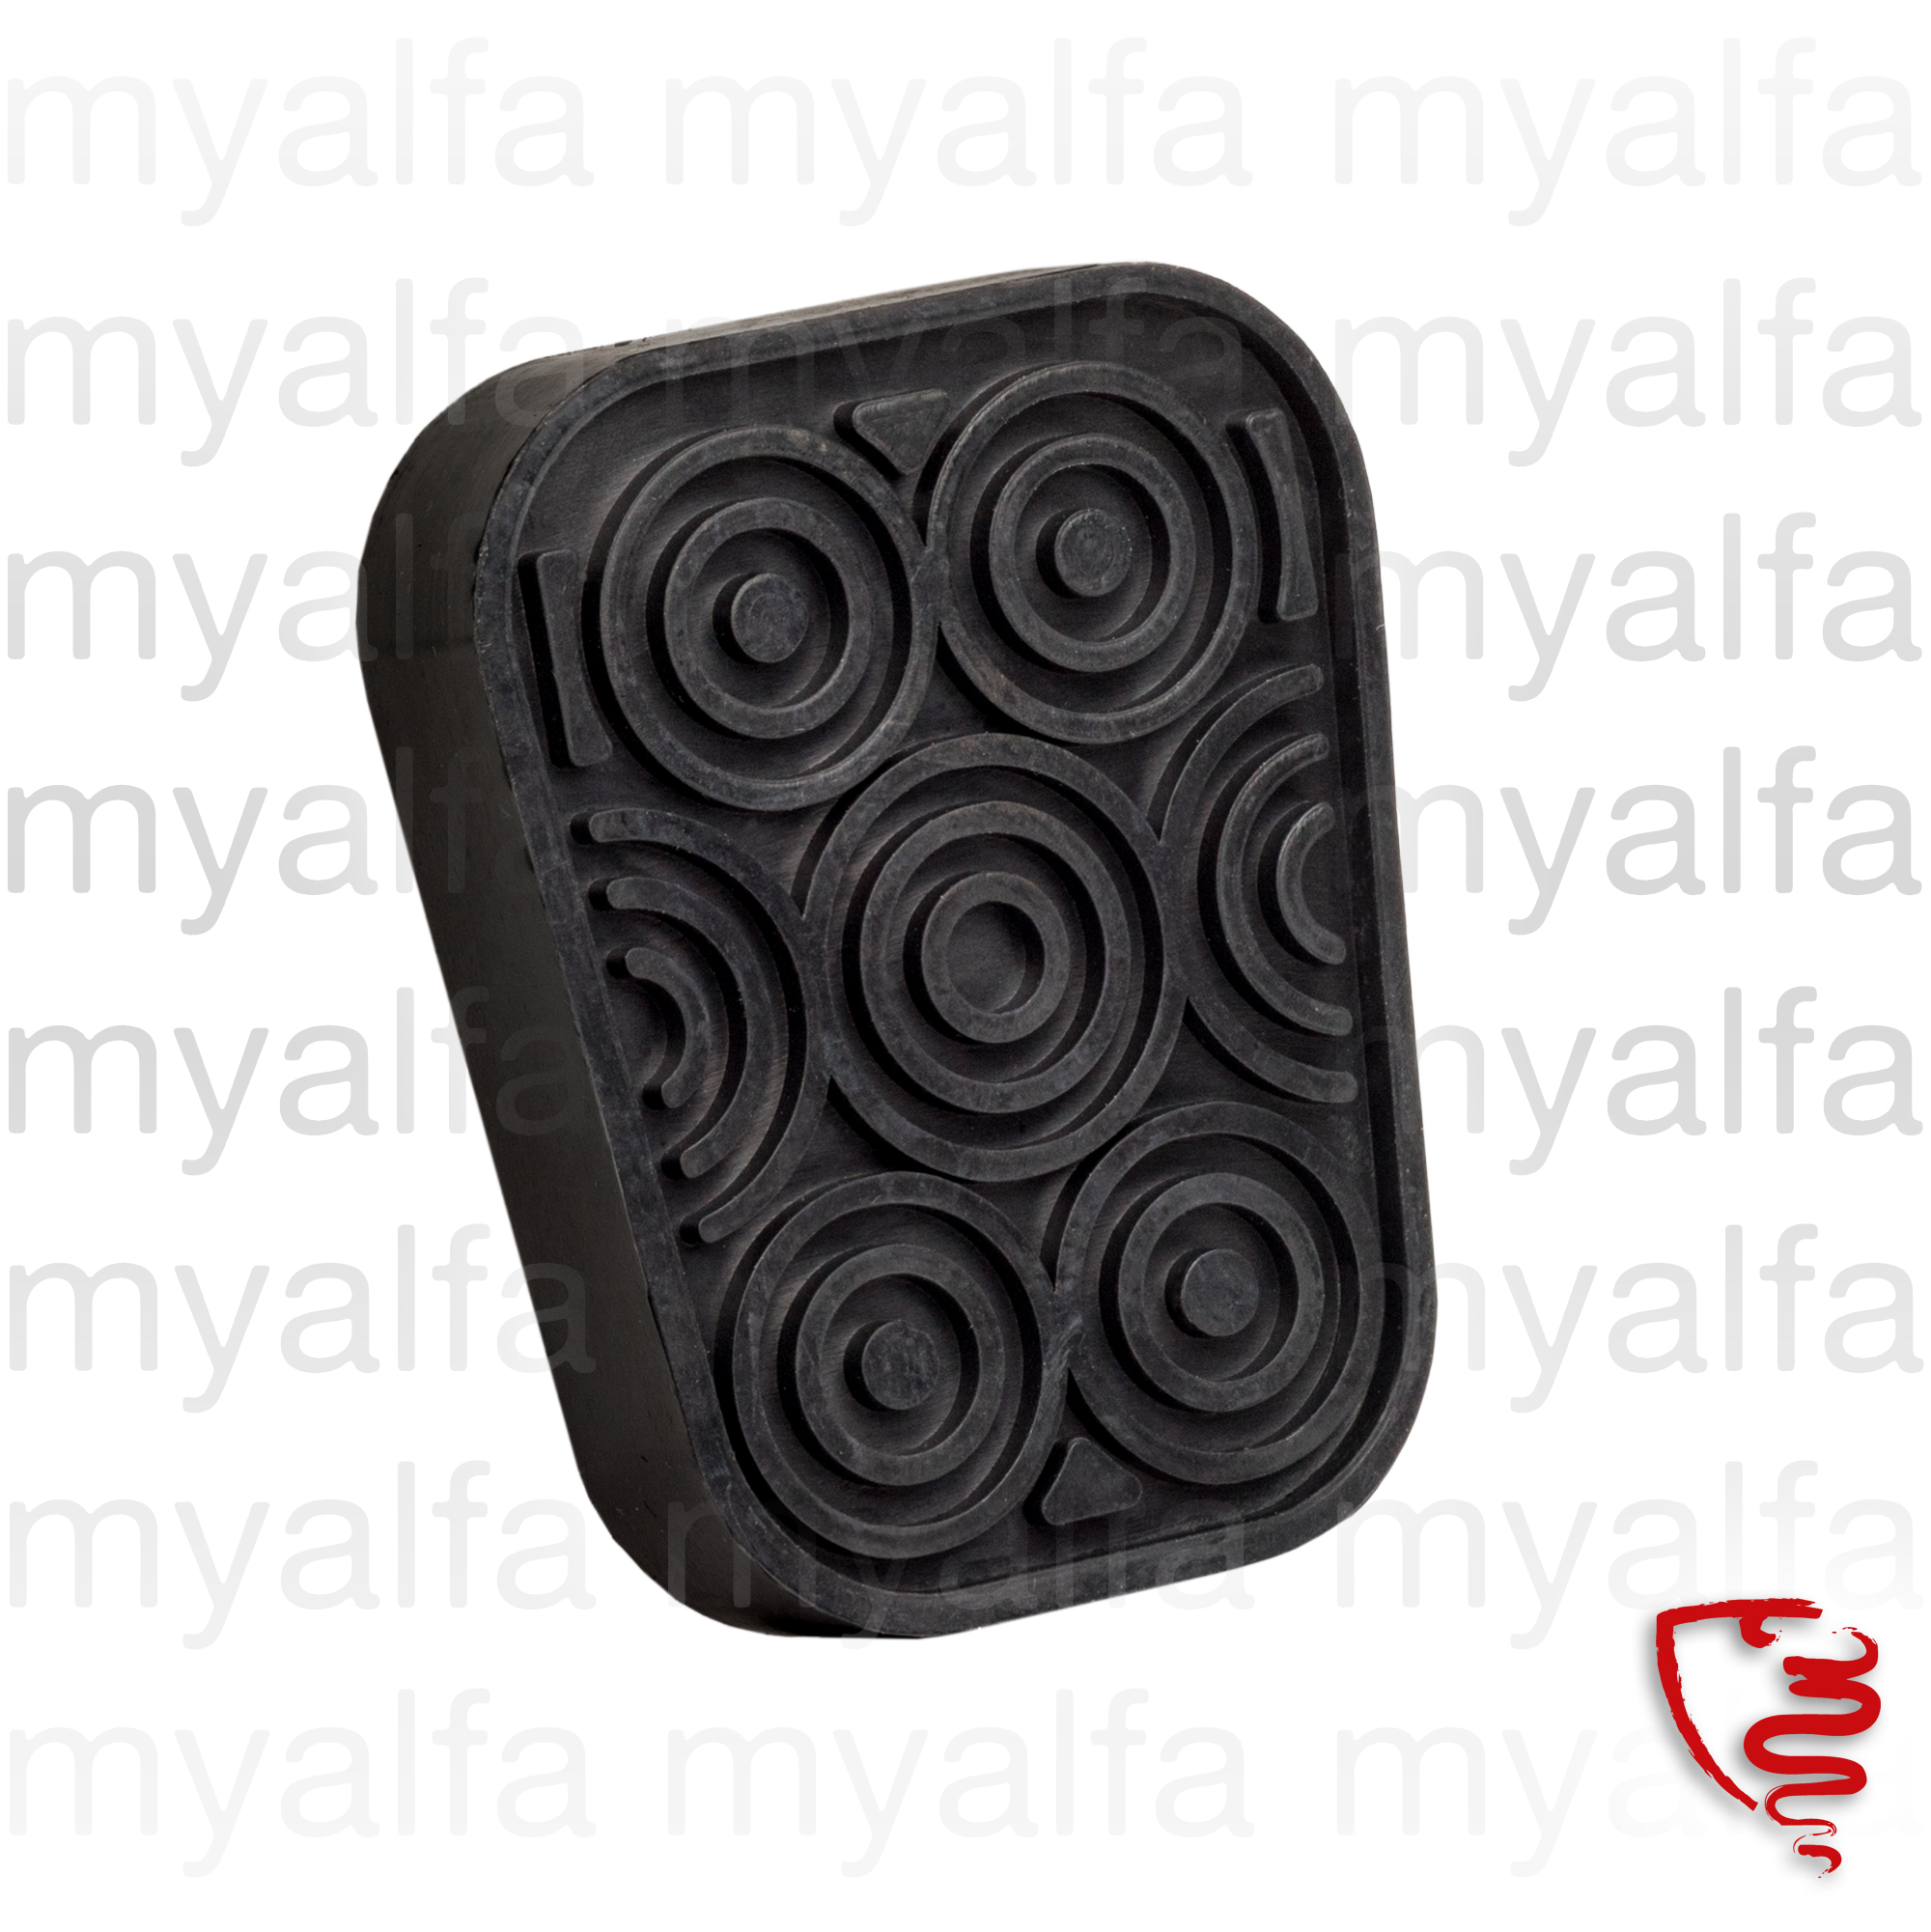 Pedal rubber clutch and brake for 105/115, Pedals